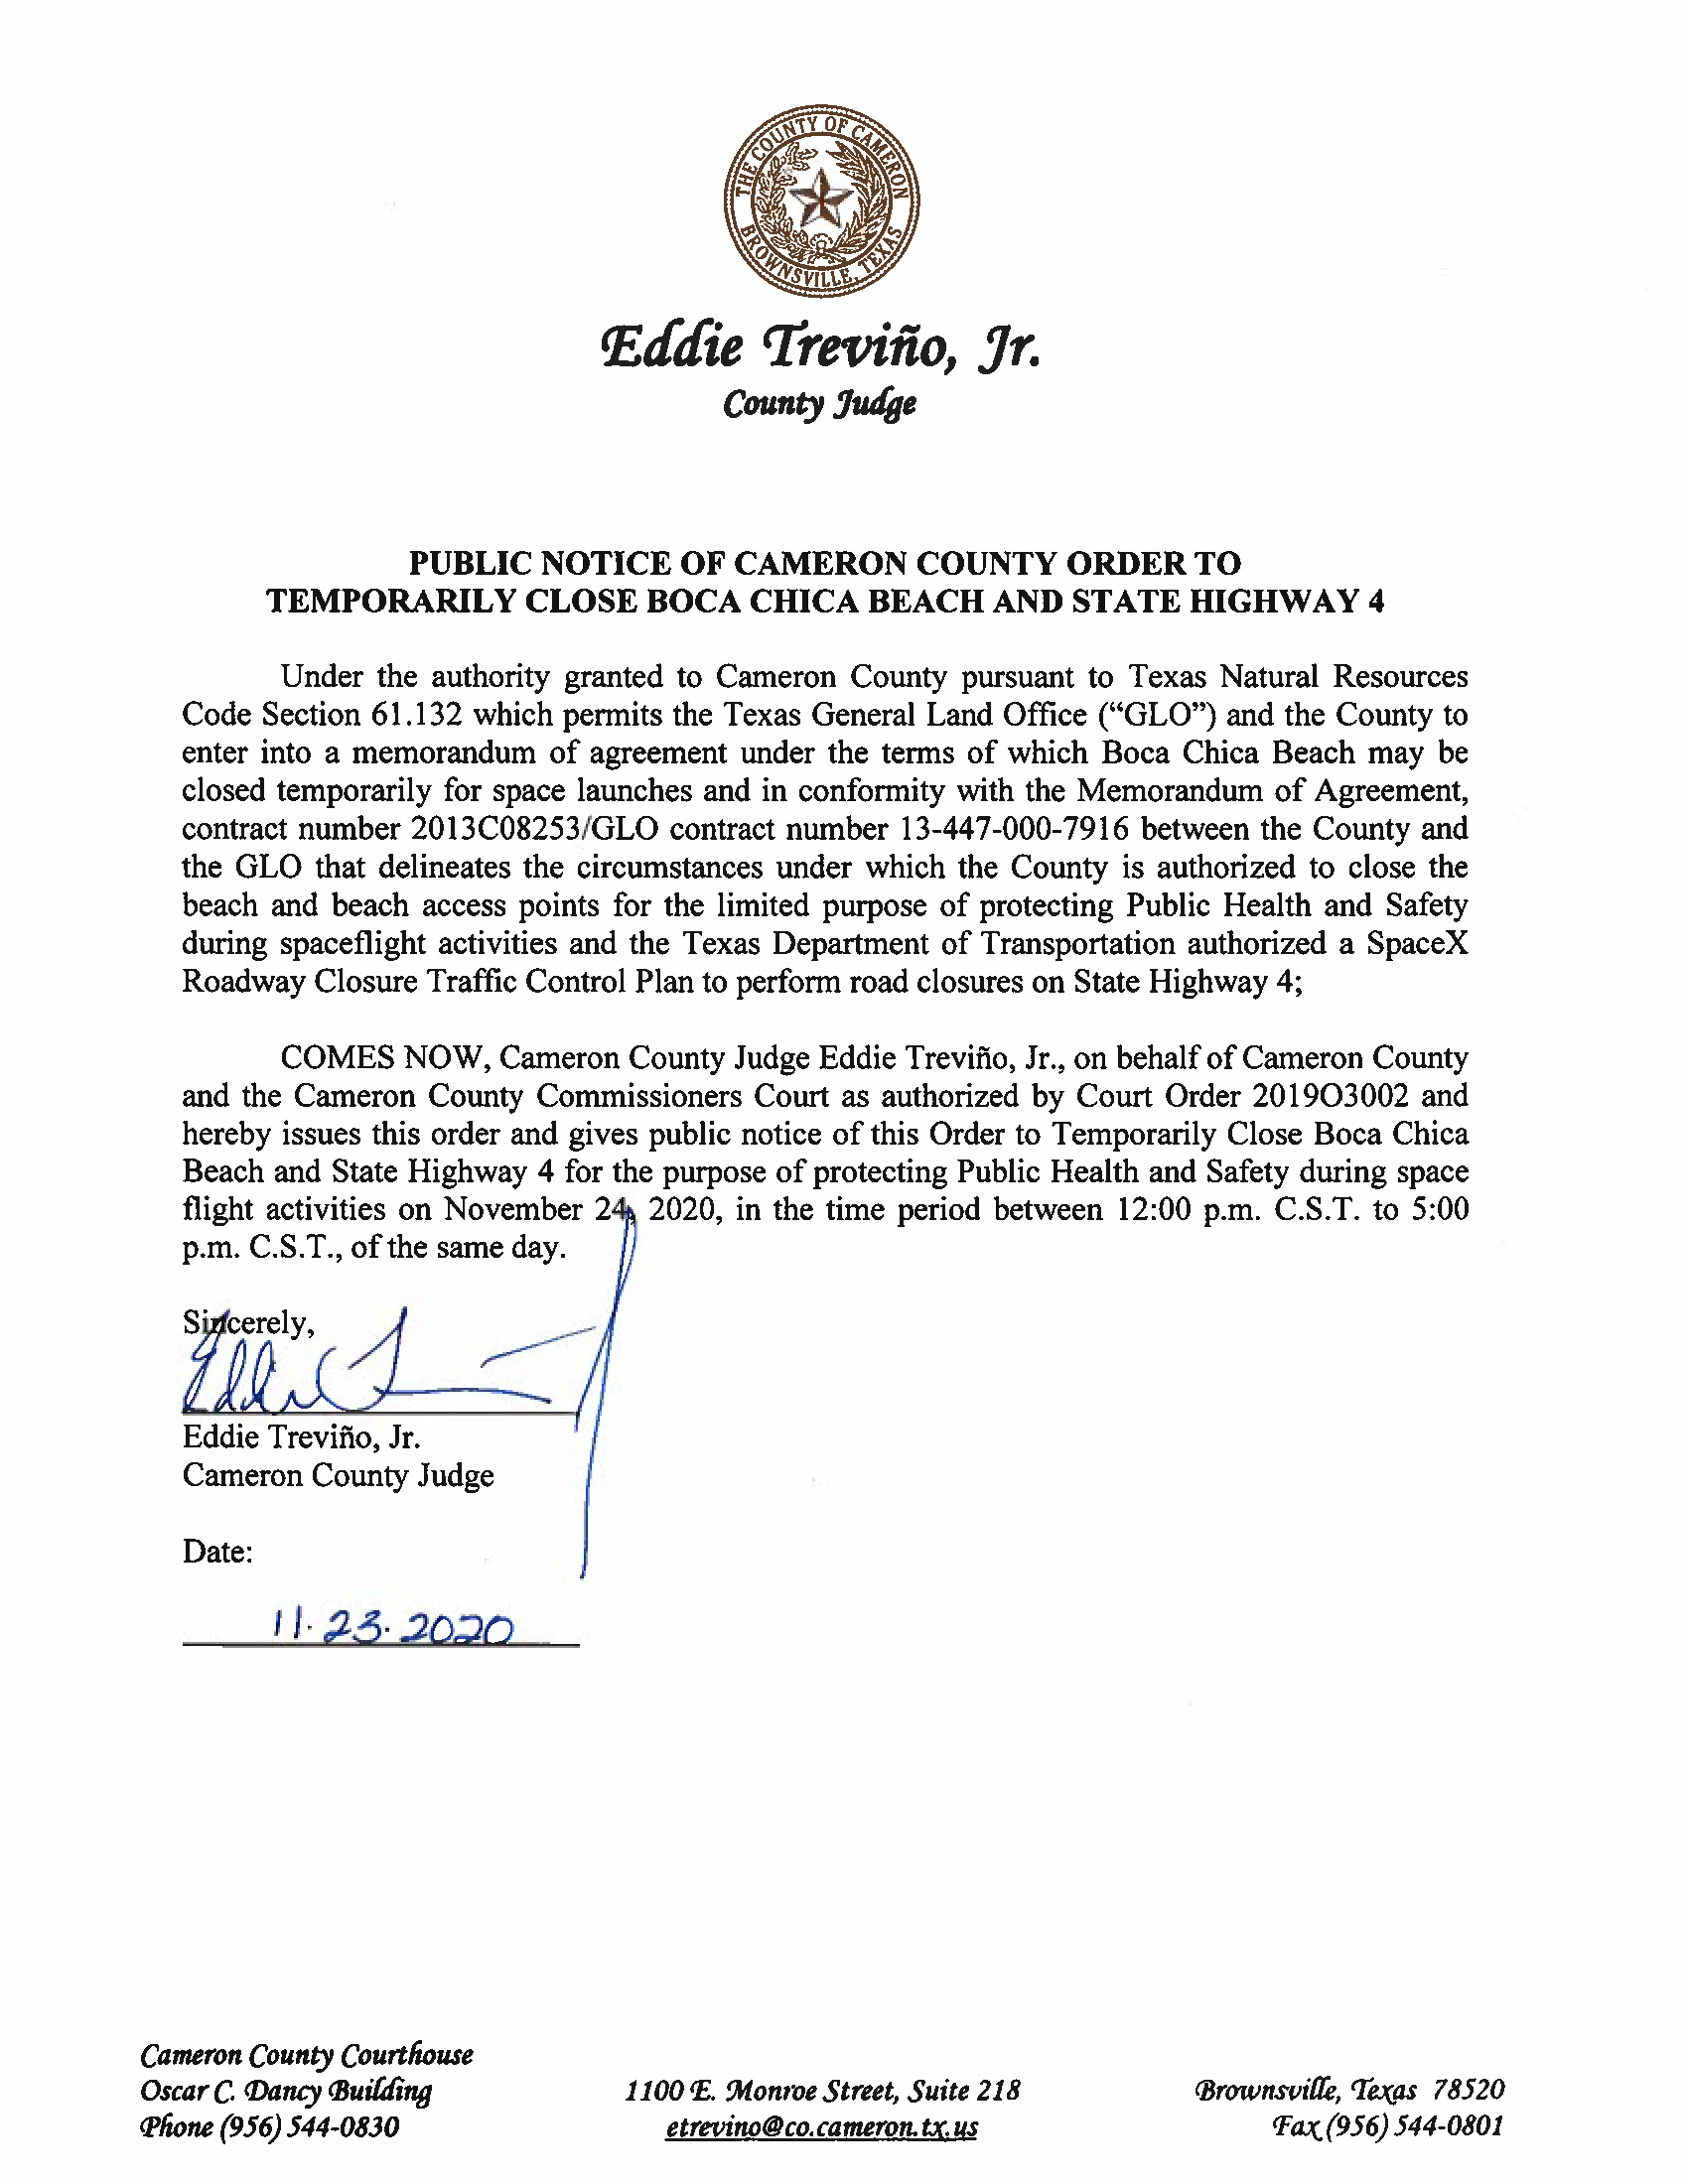 PUBLIC NOTICE OF CAMERON COUNTY ORDER TO TEMP. BEACH CLOSURE AND HWY.11.24.20 Page 1